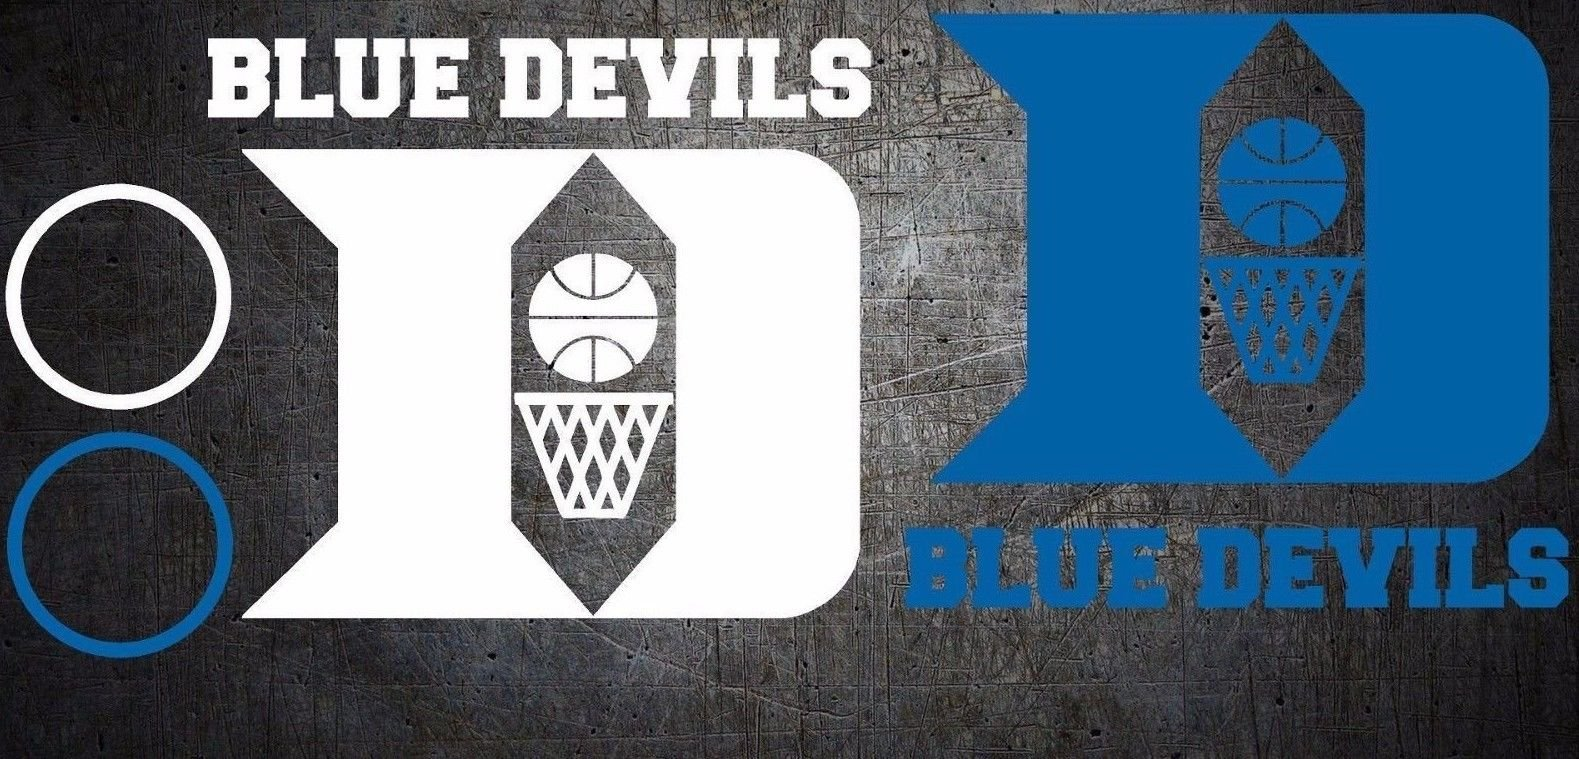 G&S Duke Blue Devils Basketball Cornhole Decals Sticker 6 pc Set - Free Window Decal (All Blue) by G&S